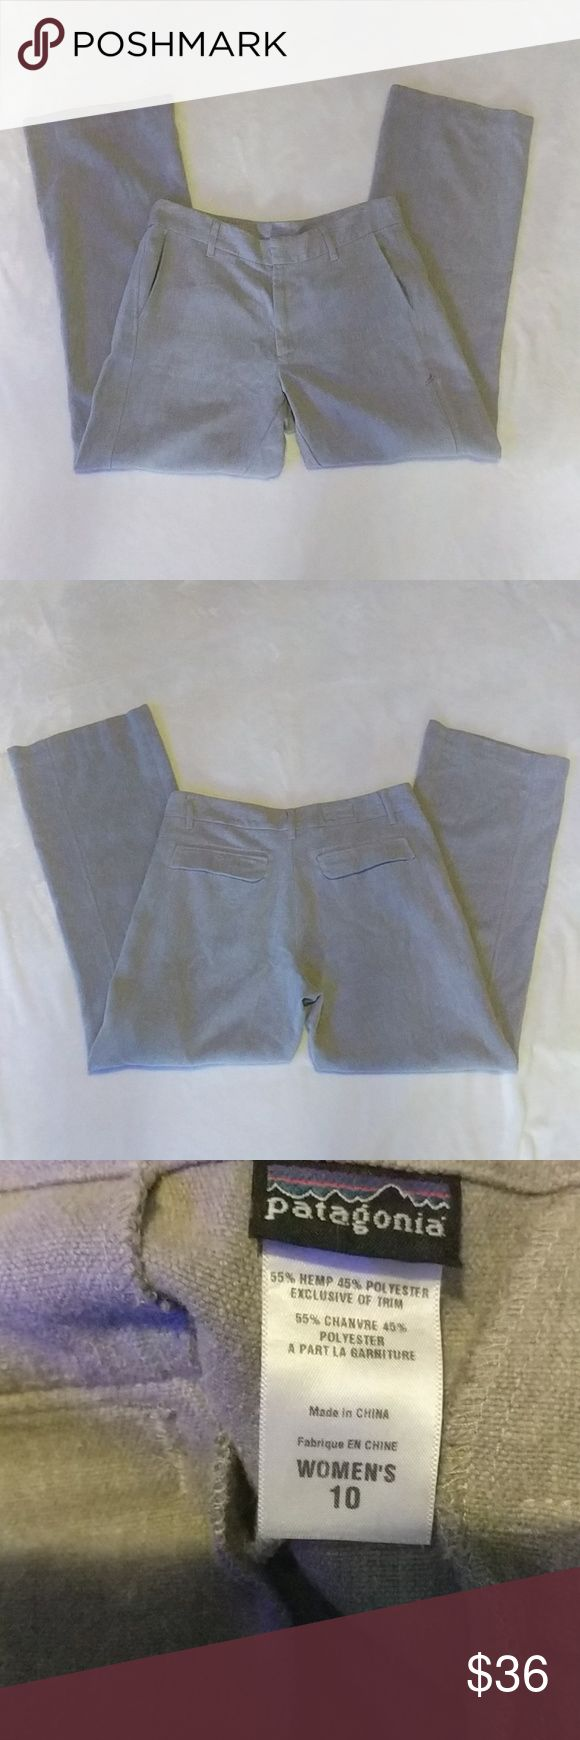 """Patagonia Gray Pants Patagonia Pants, 55 % Hemp, 45% Polyester, inseam 31"""", waist flat across is 16.5"""", front rise 10"""" Fabric feels like a heavy flannel, never worn, no tags Patagonia Pants Trousers"""